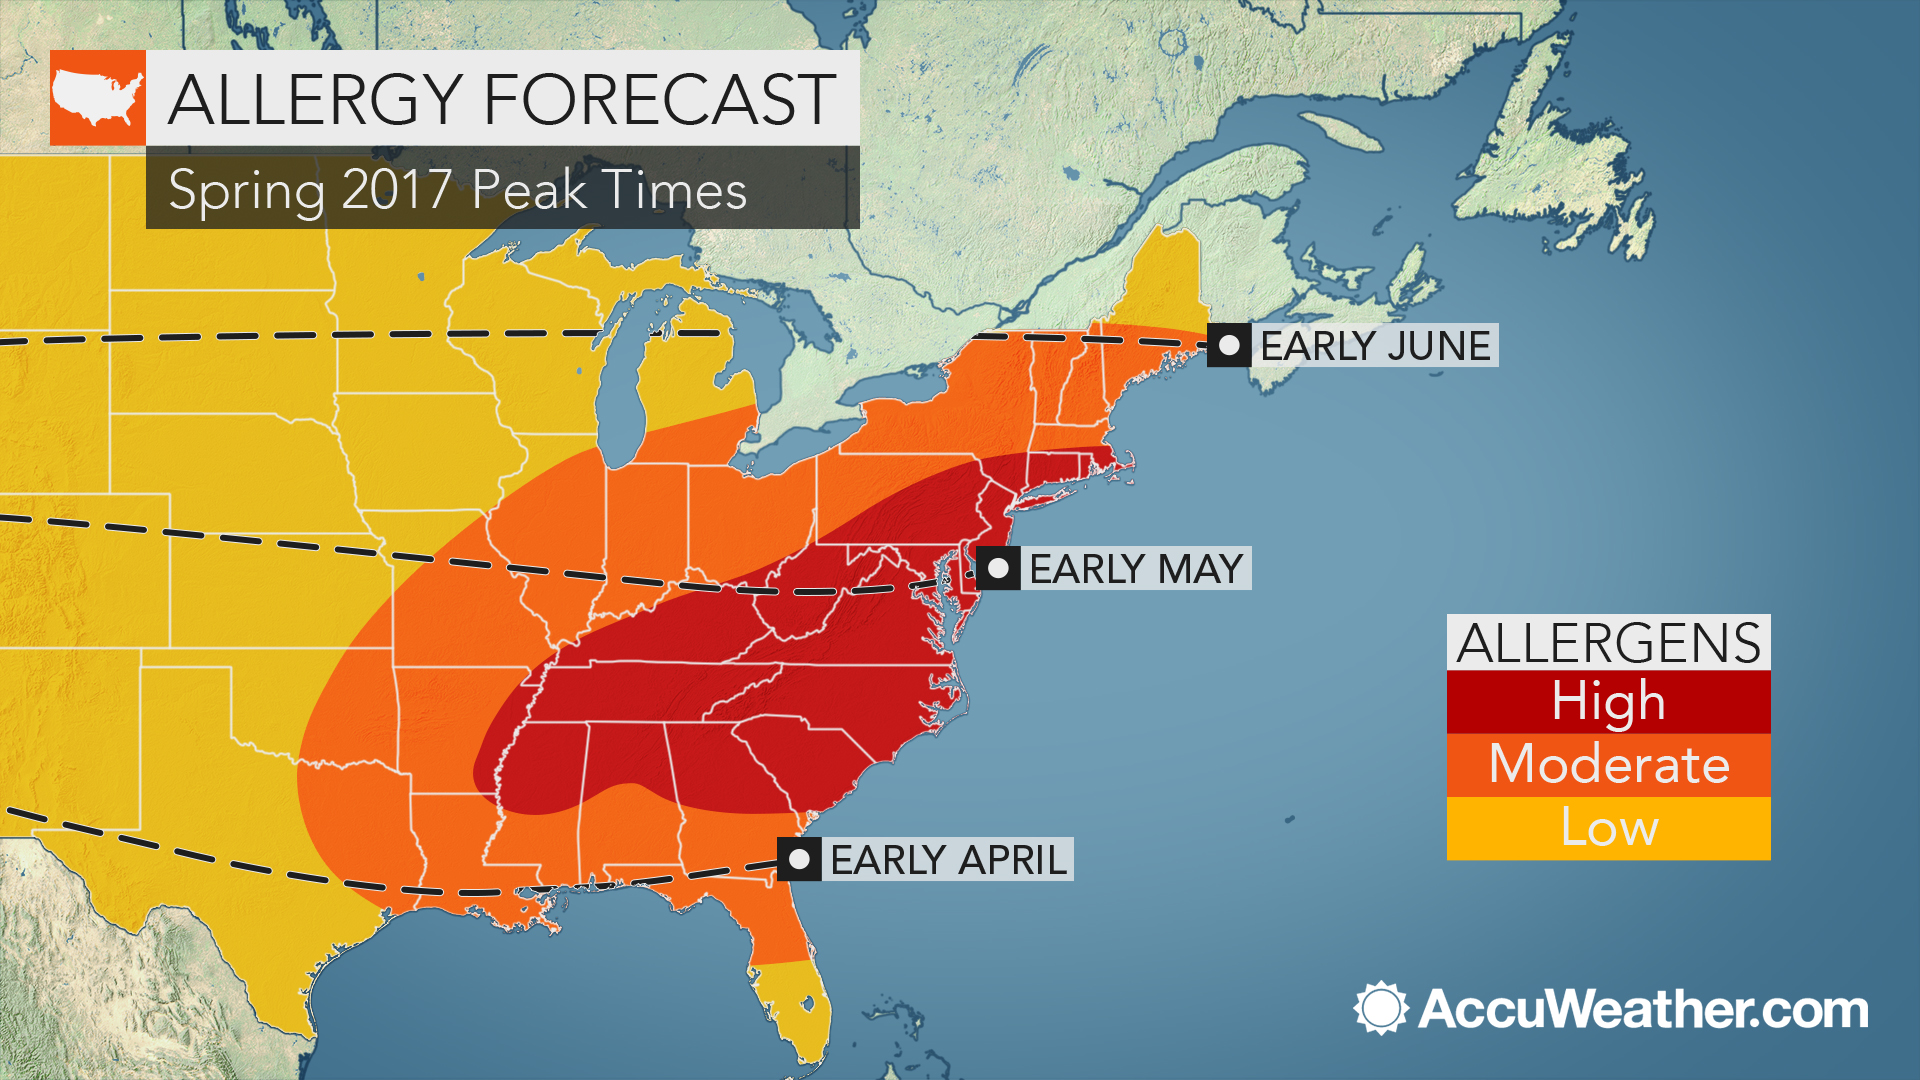 Eastern US allergy sufferers face early, prolonged spring